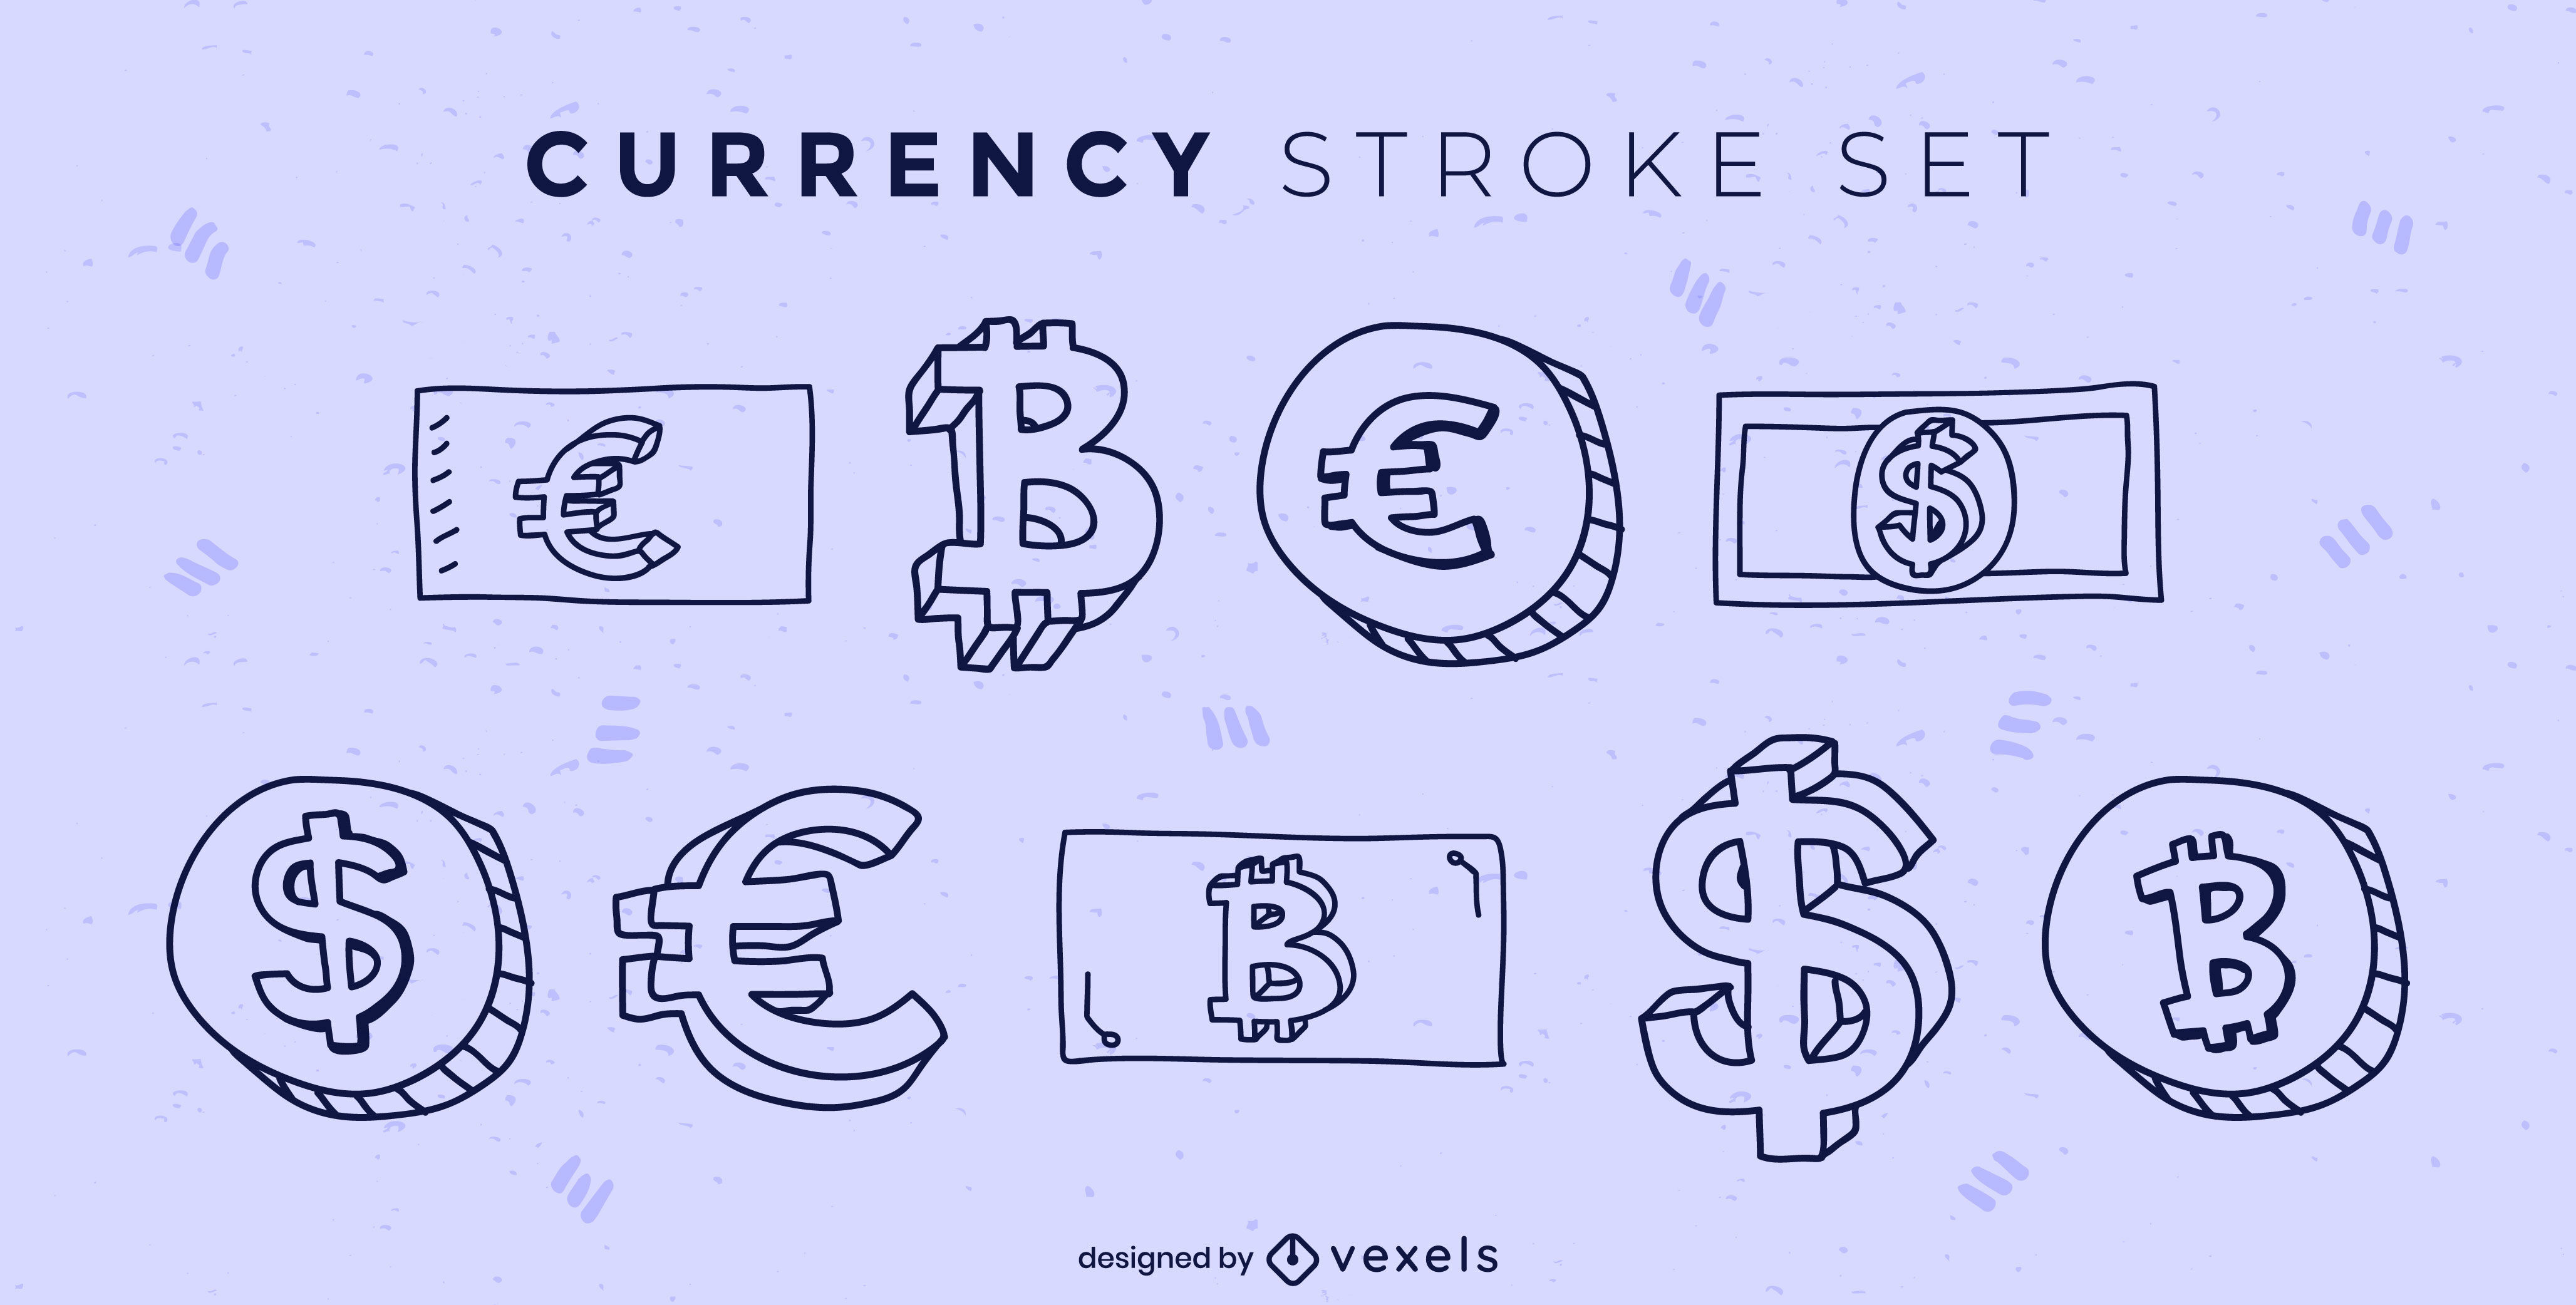 Currency payment bills and coins stroke set